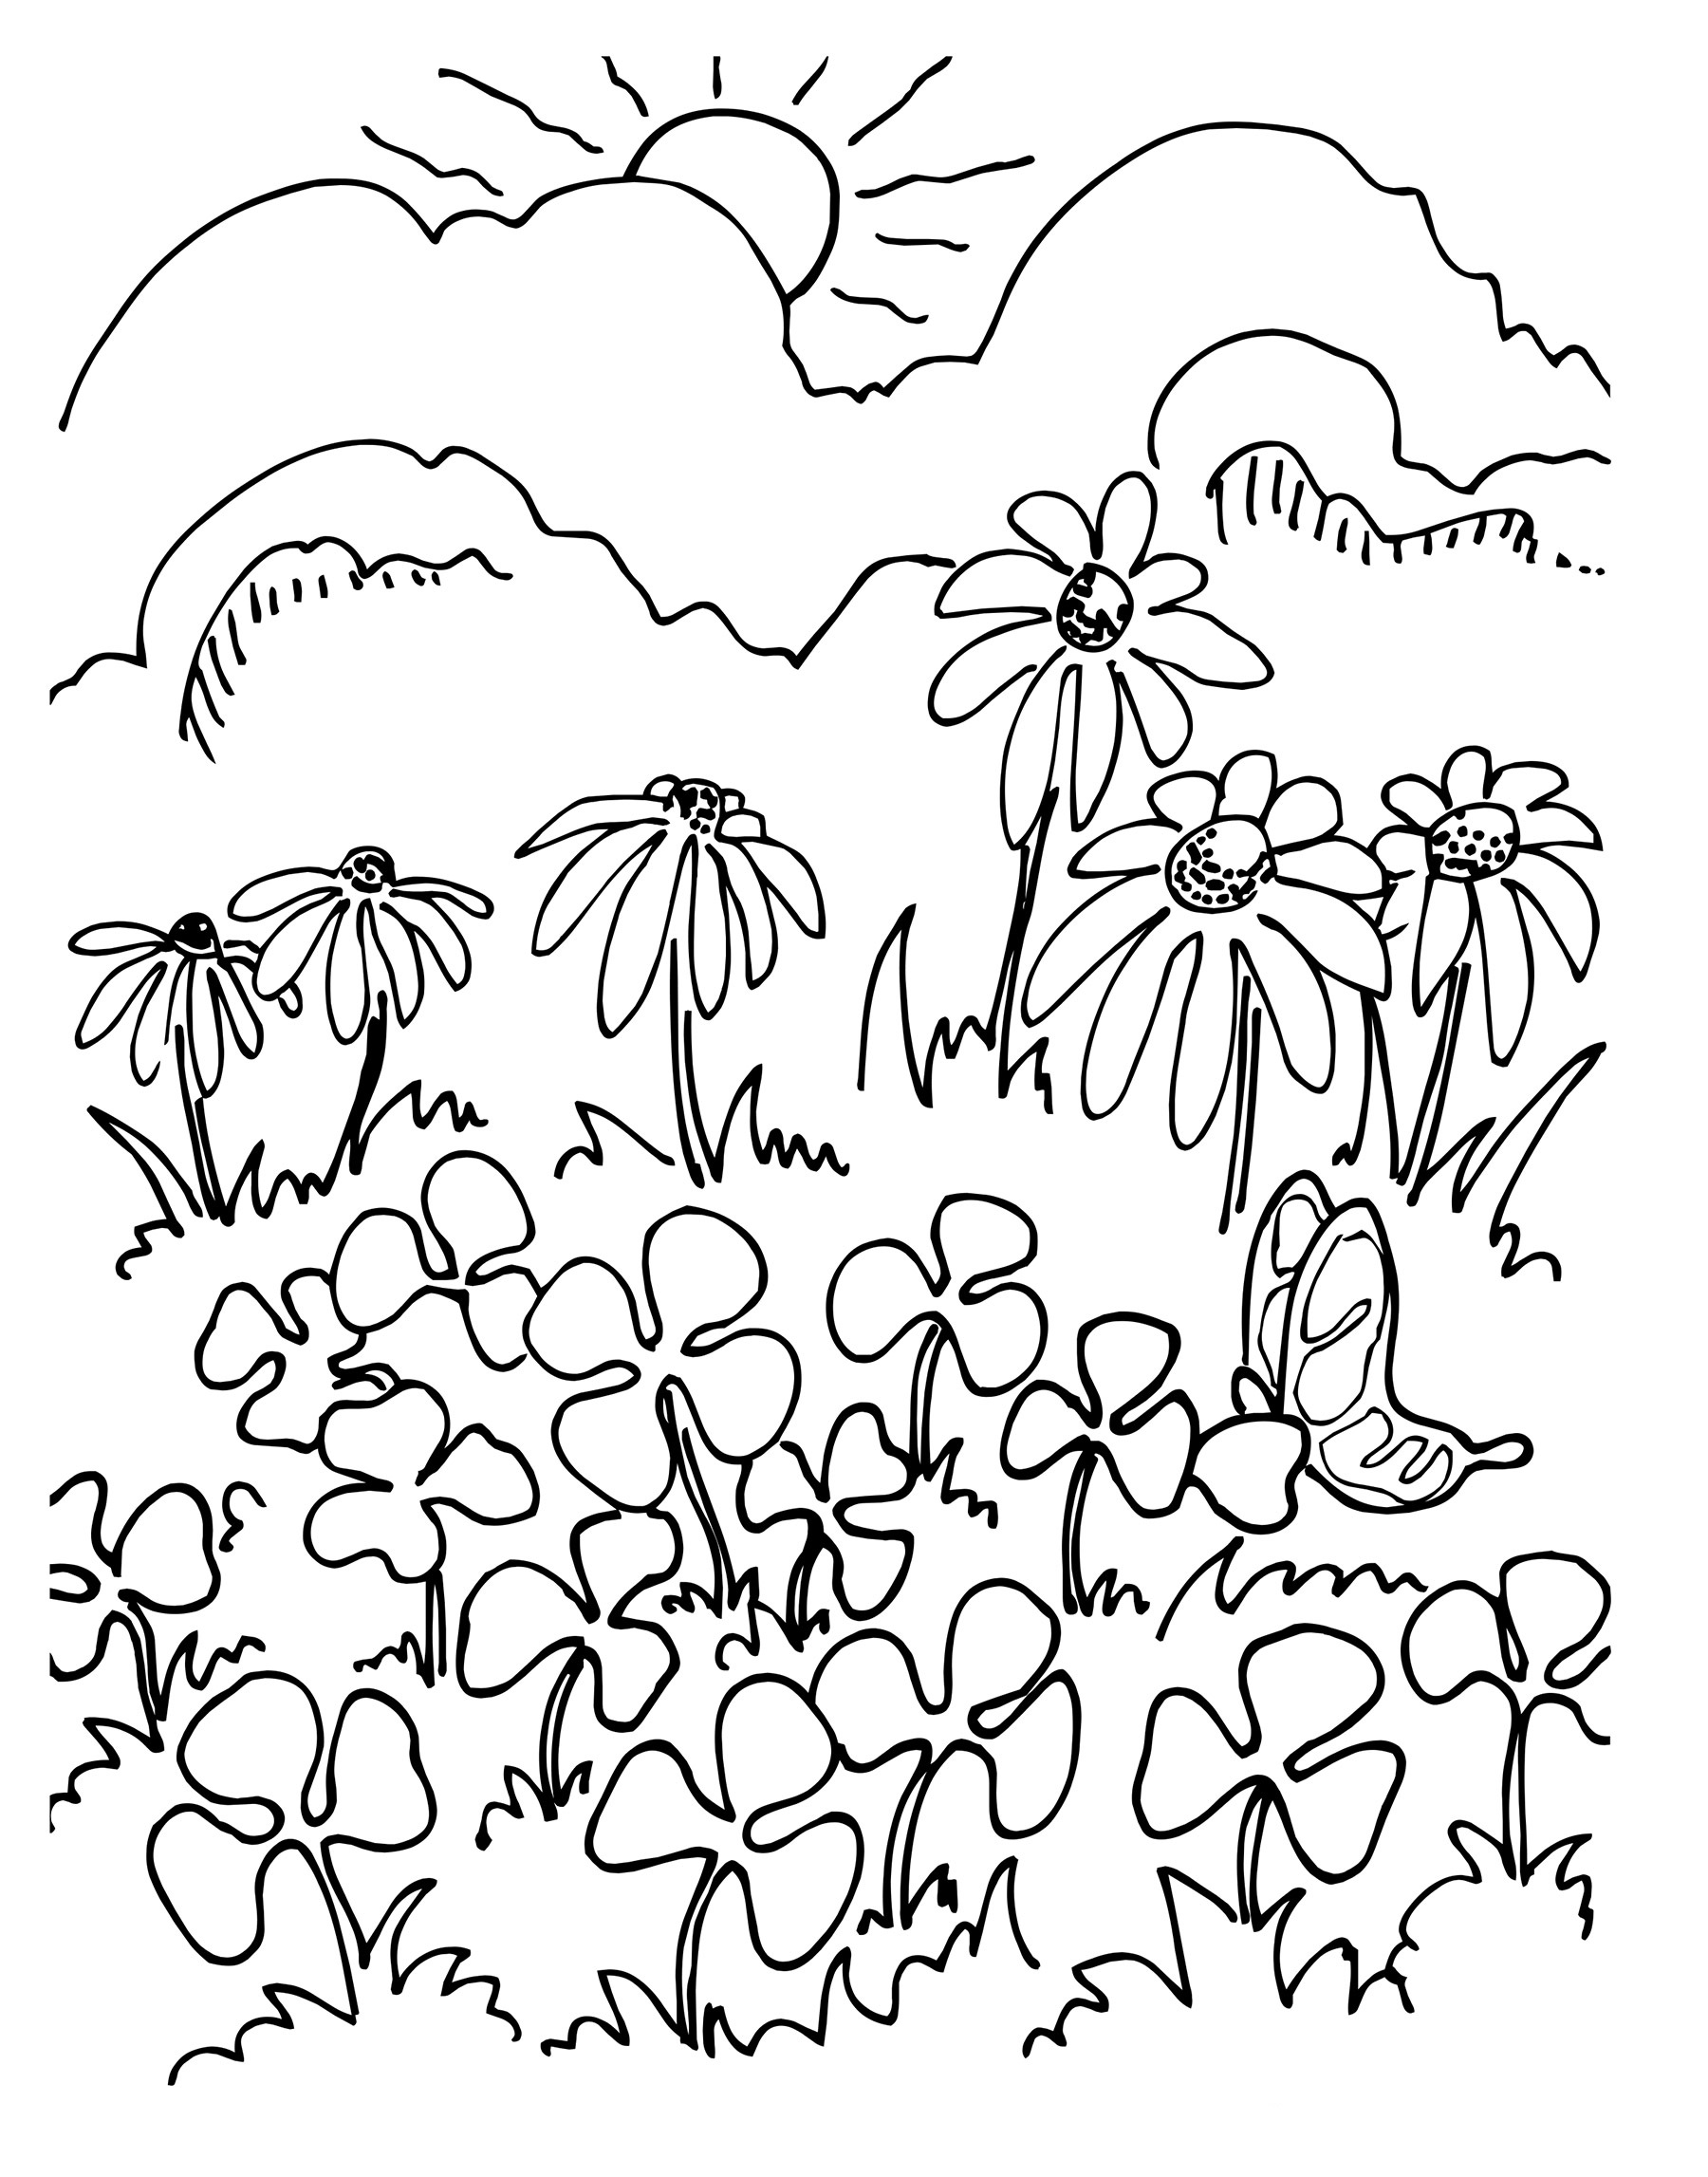 Printable coloring page for adults with mountain Vector Image | 2294x1800